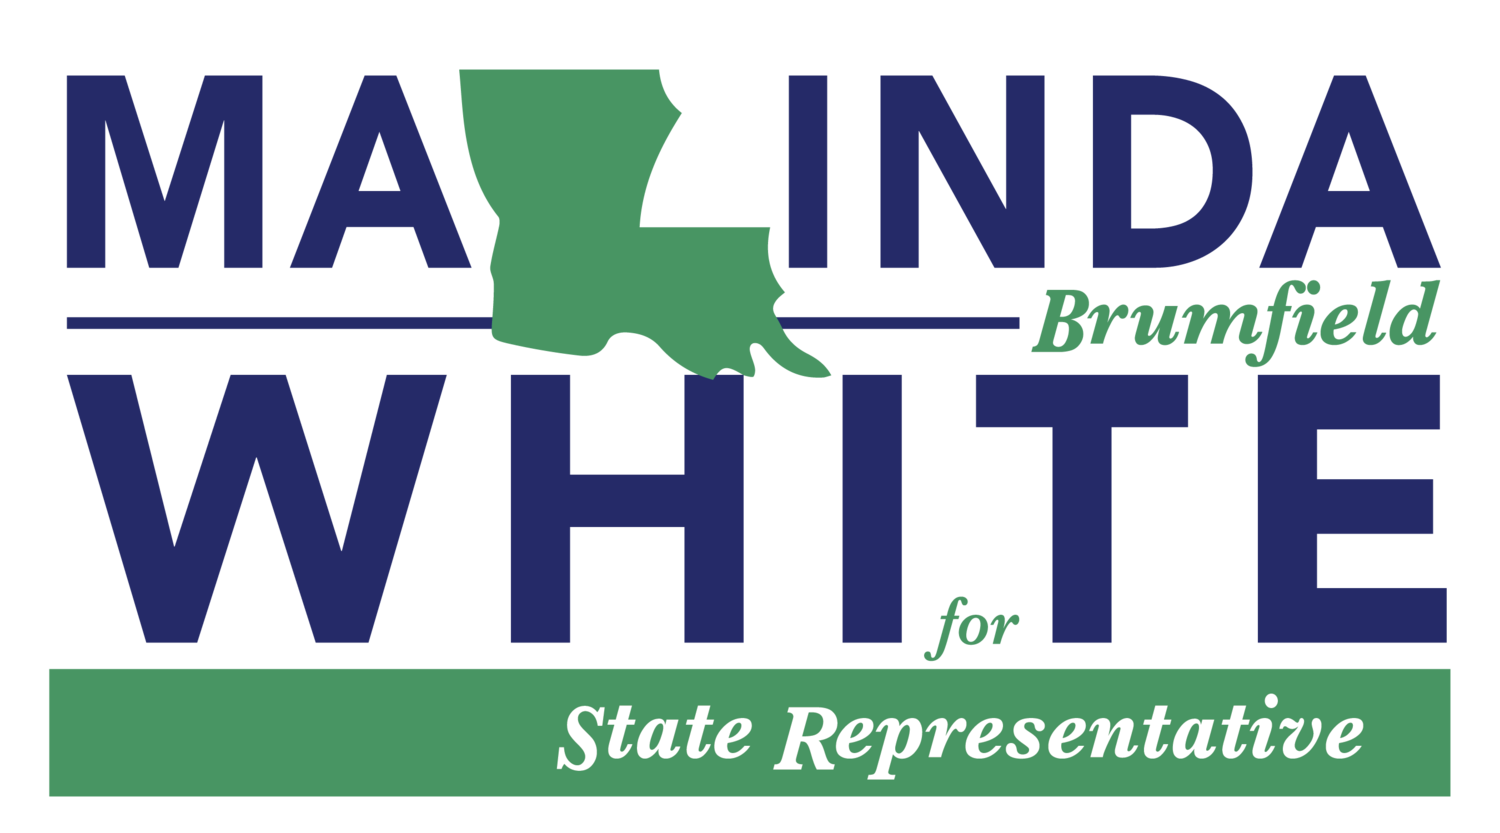 Re-Elect Malinda Brumfield White for State Representative